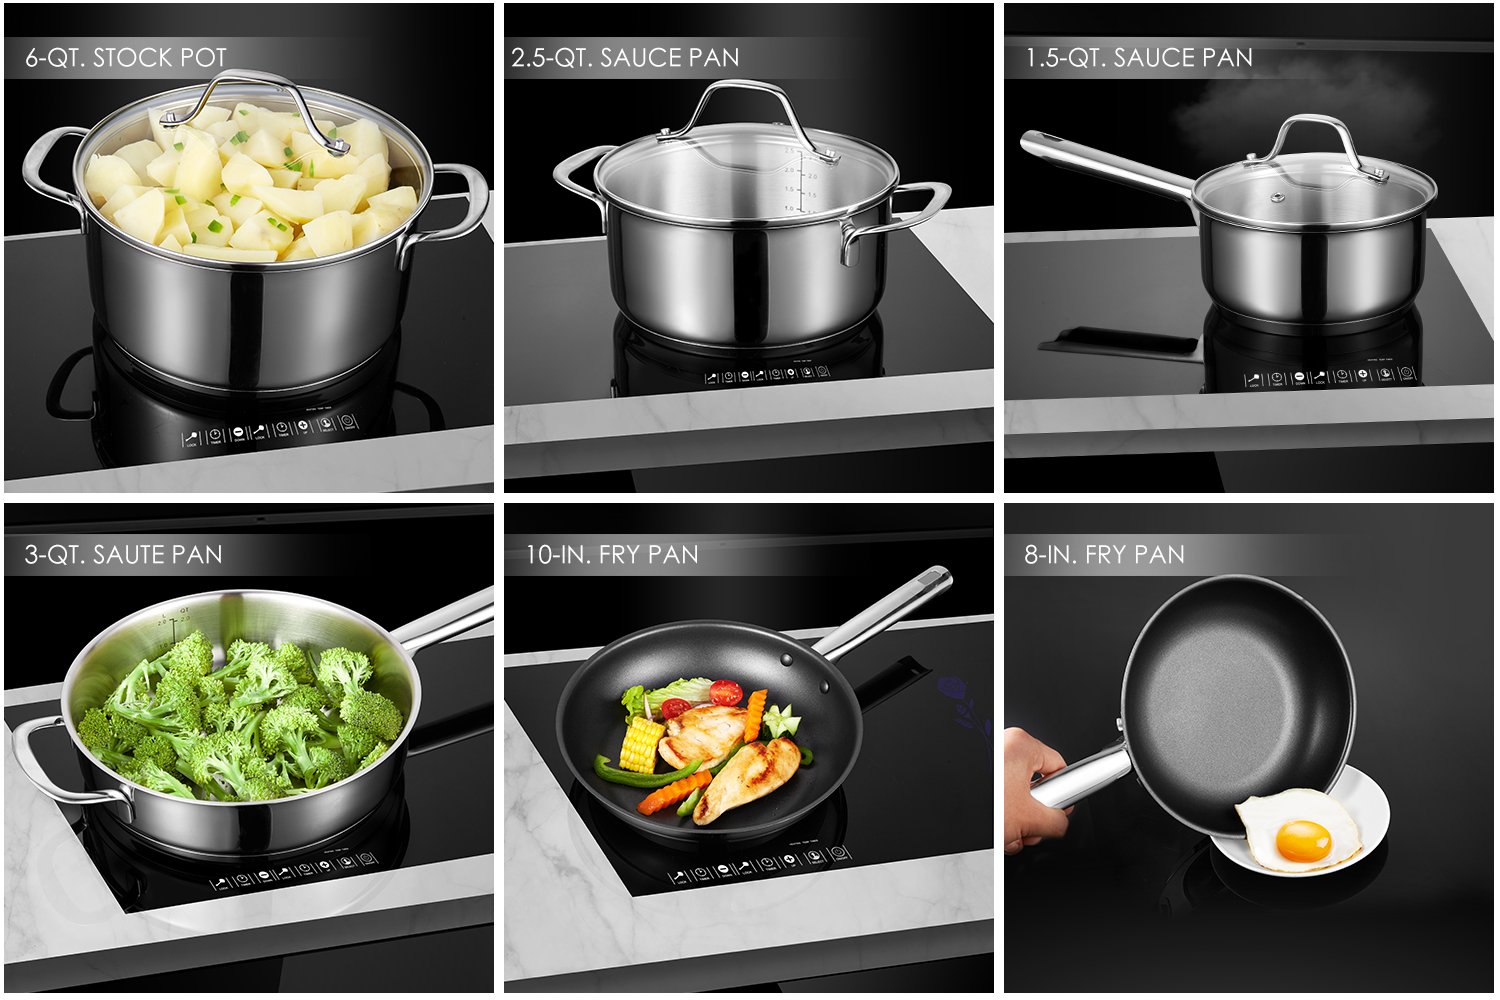 Deik Cookware Set, Kitchenware Set, MultiClad Pro Stainless Steel 12-Piece Pots and Pans Set, Rustproof & Oven-Safe Cooking Pots, PFOA Free & Riveted Handles with a Bonus of Oven Mitts by Deik (Image #6)